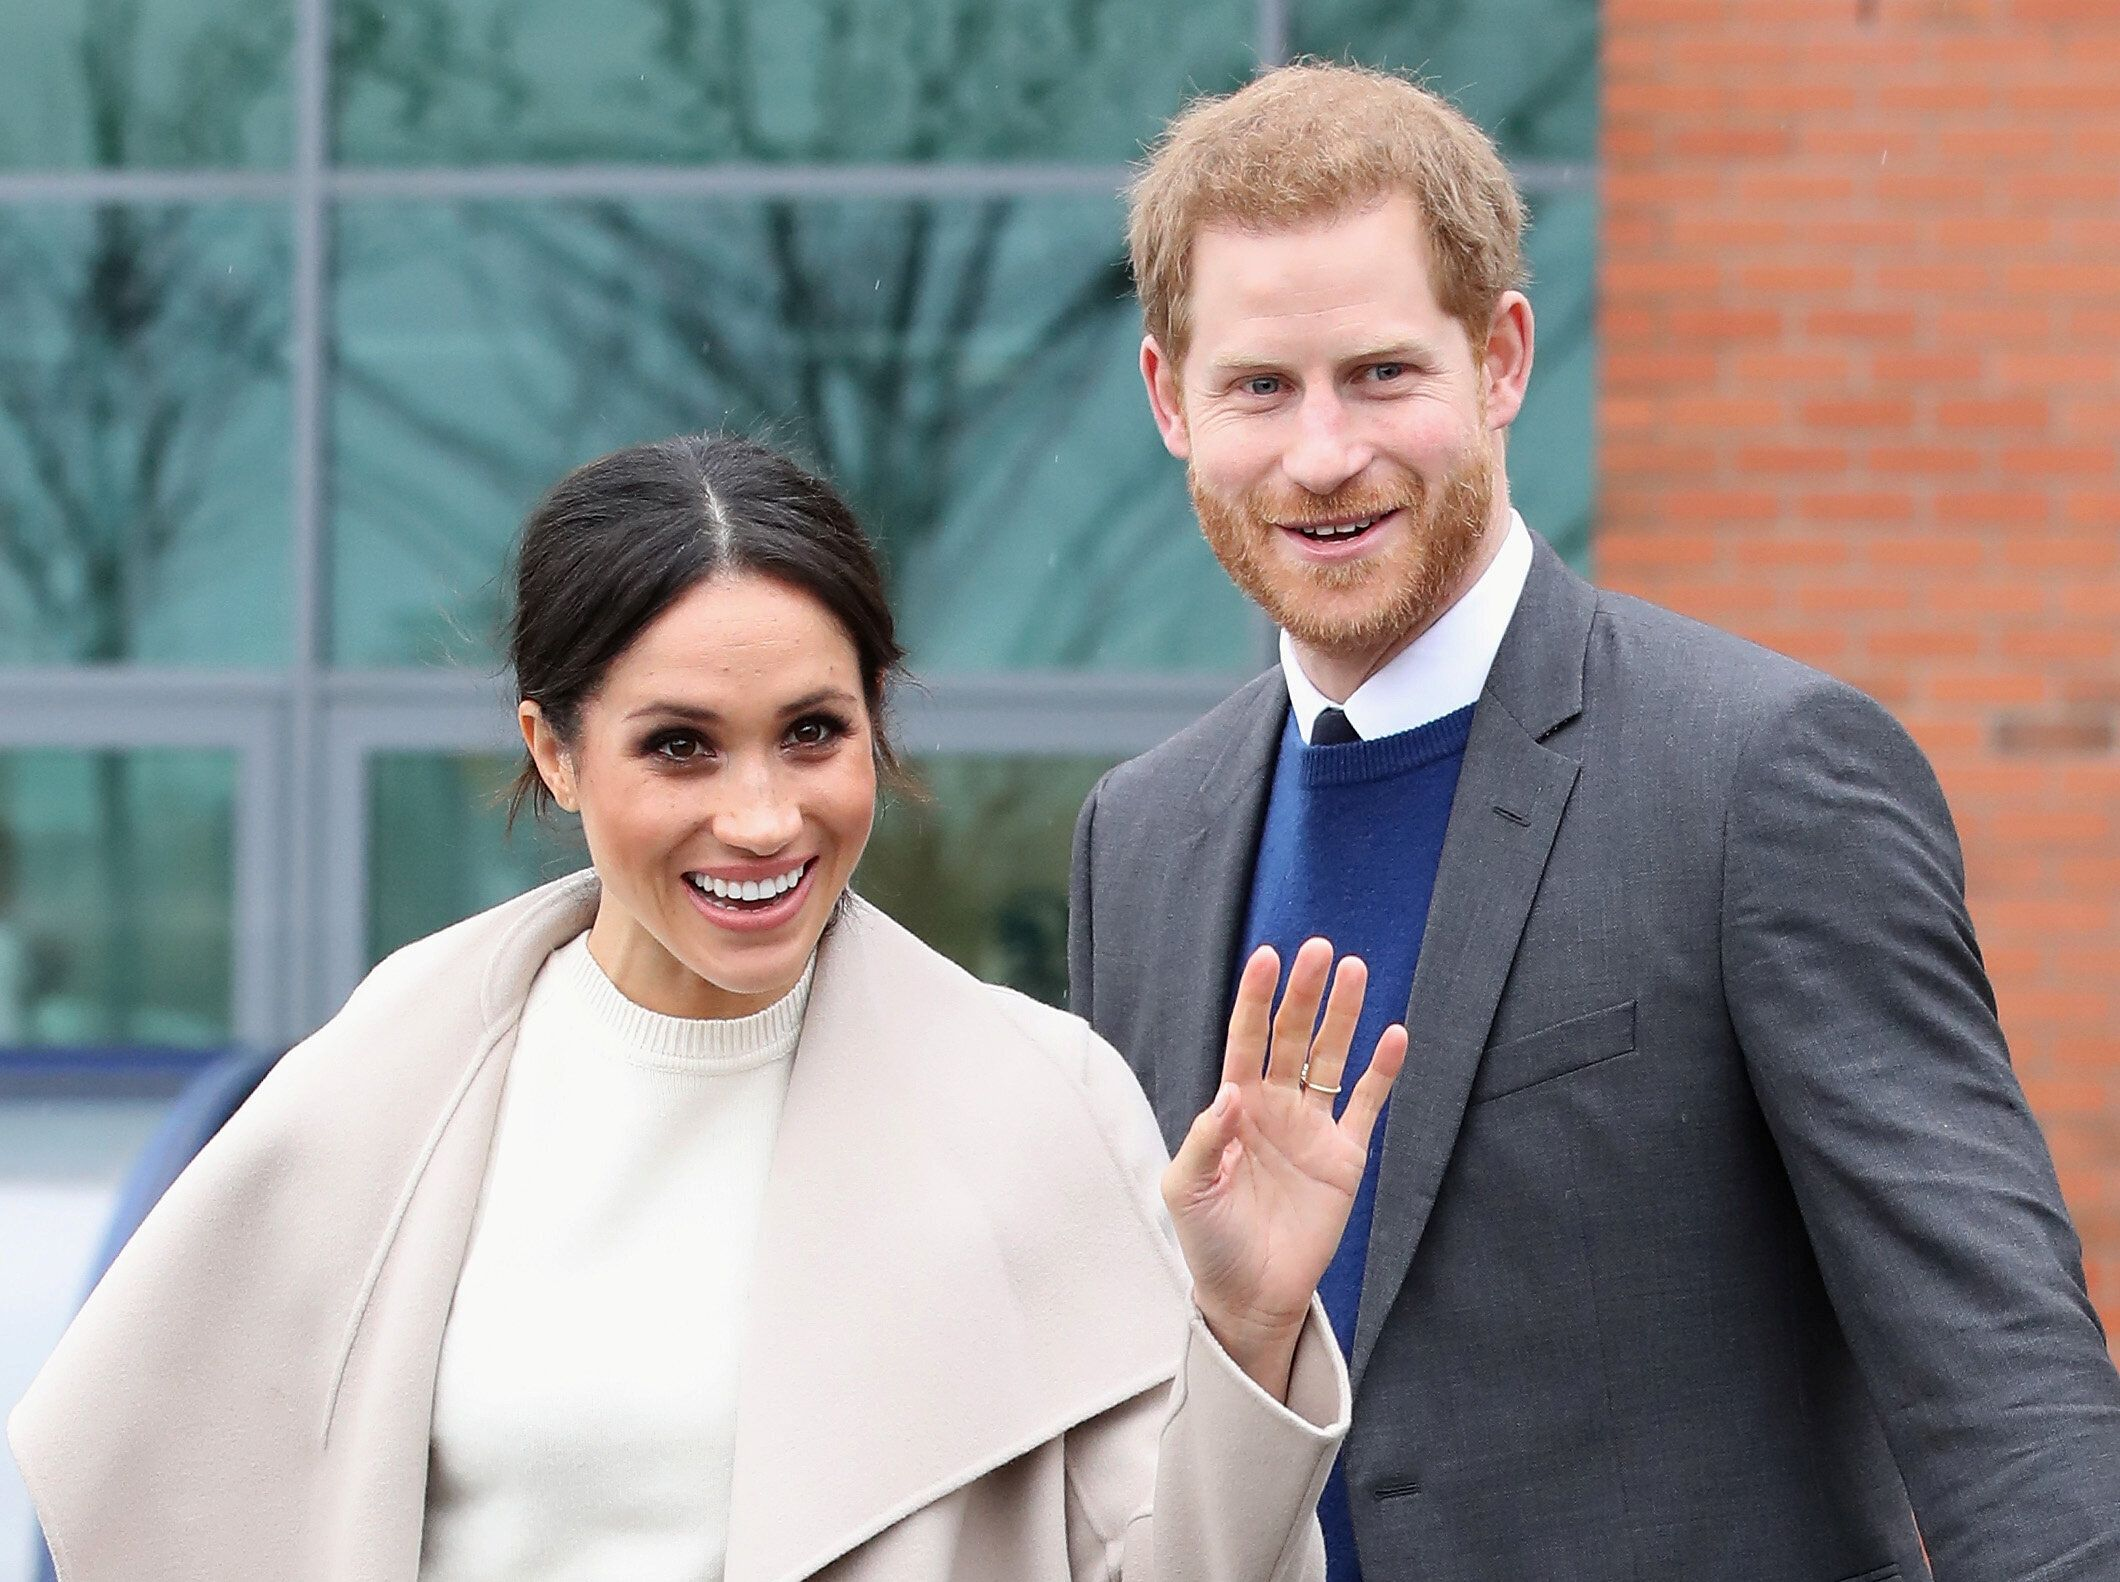 Prince Harry and Meghan Markle pictured in Belfast, Northern Ireland, on March 23, 2018.